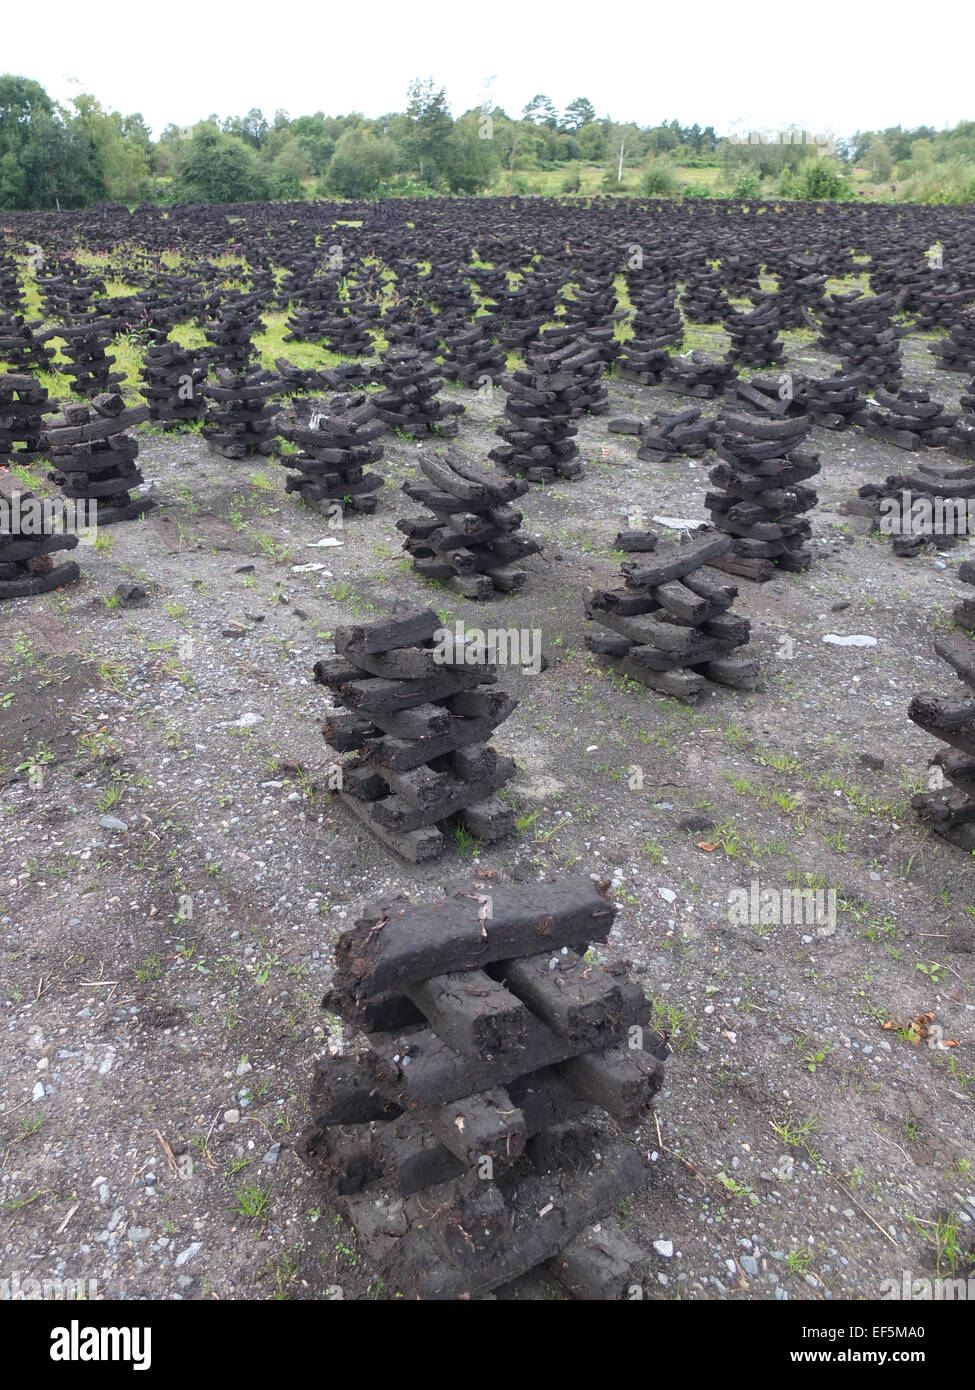 Peat stacks in Ireland - Stock Image